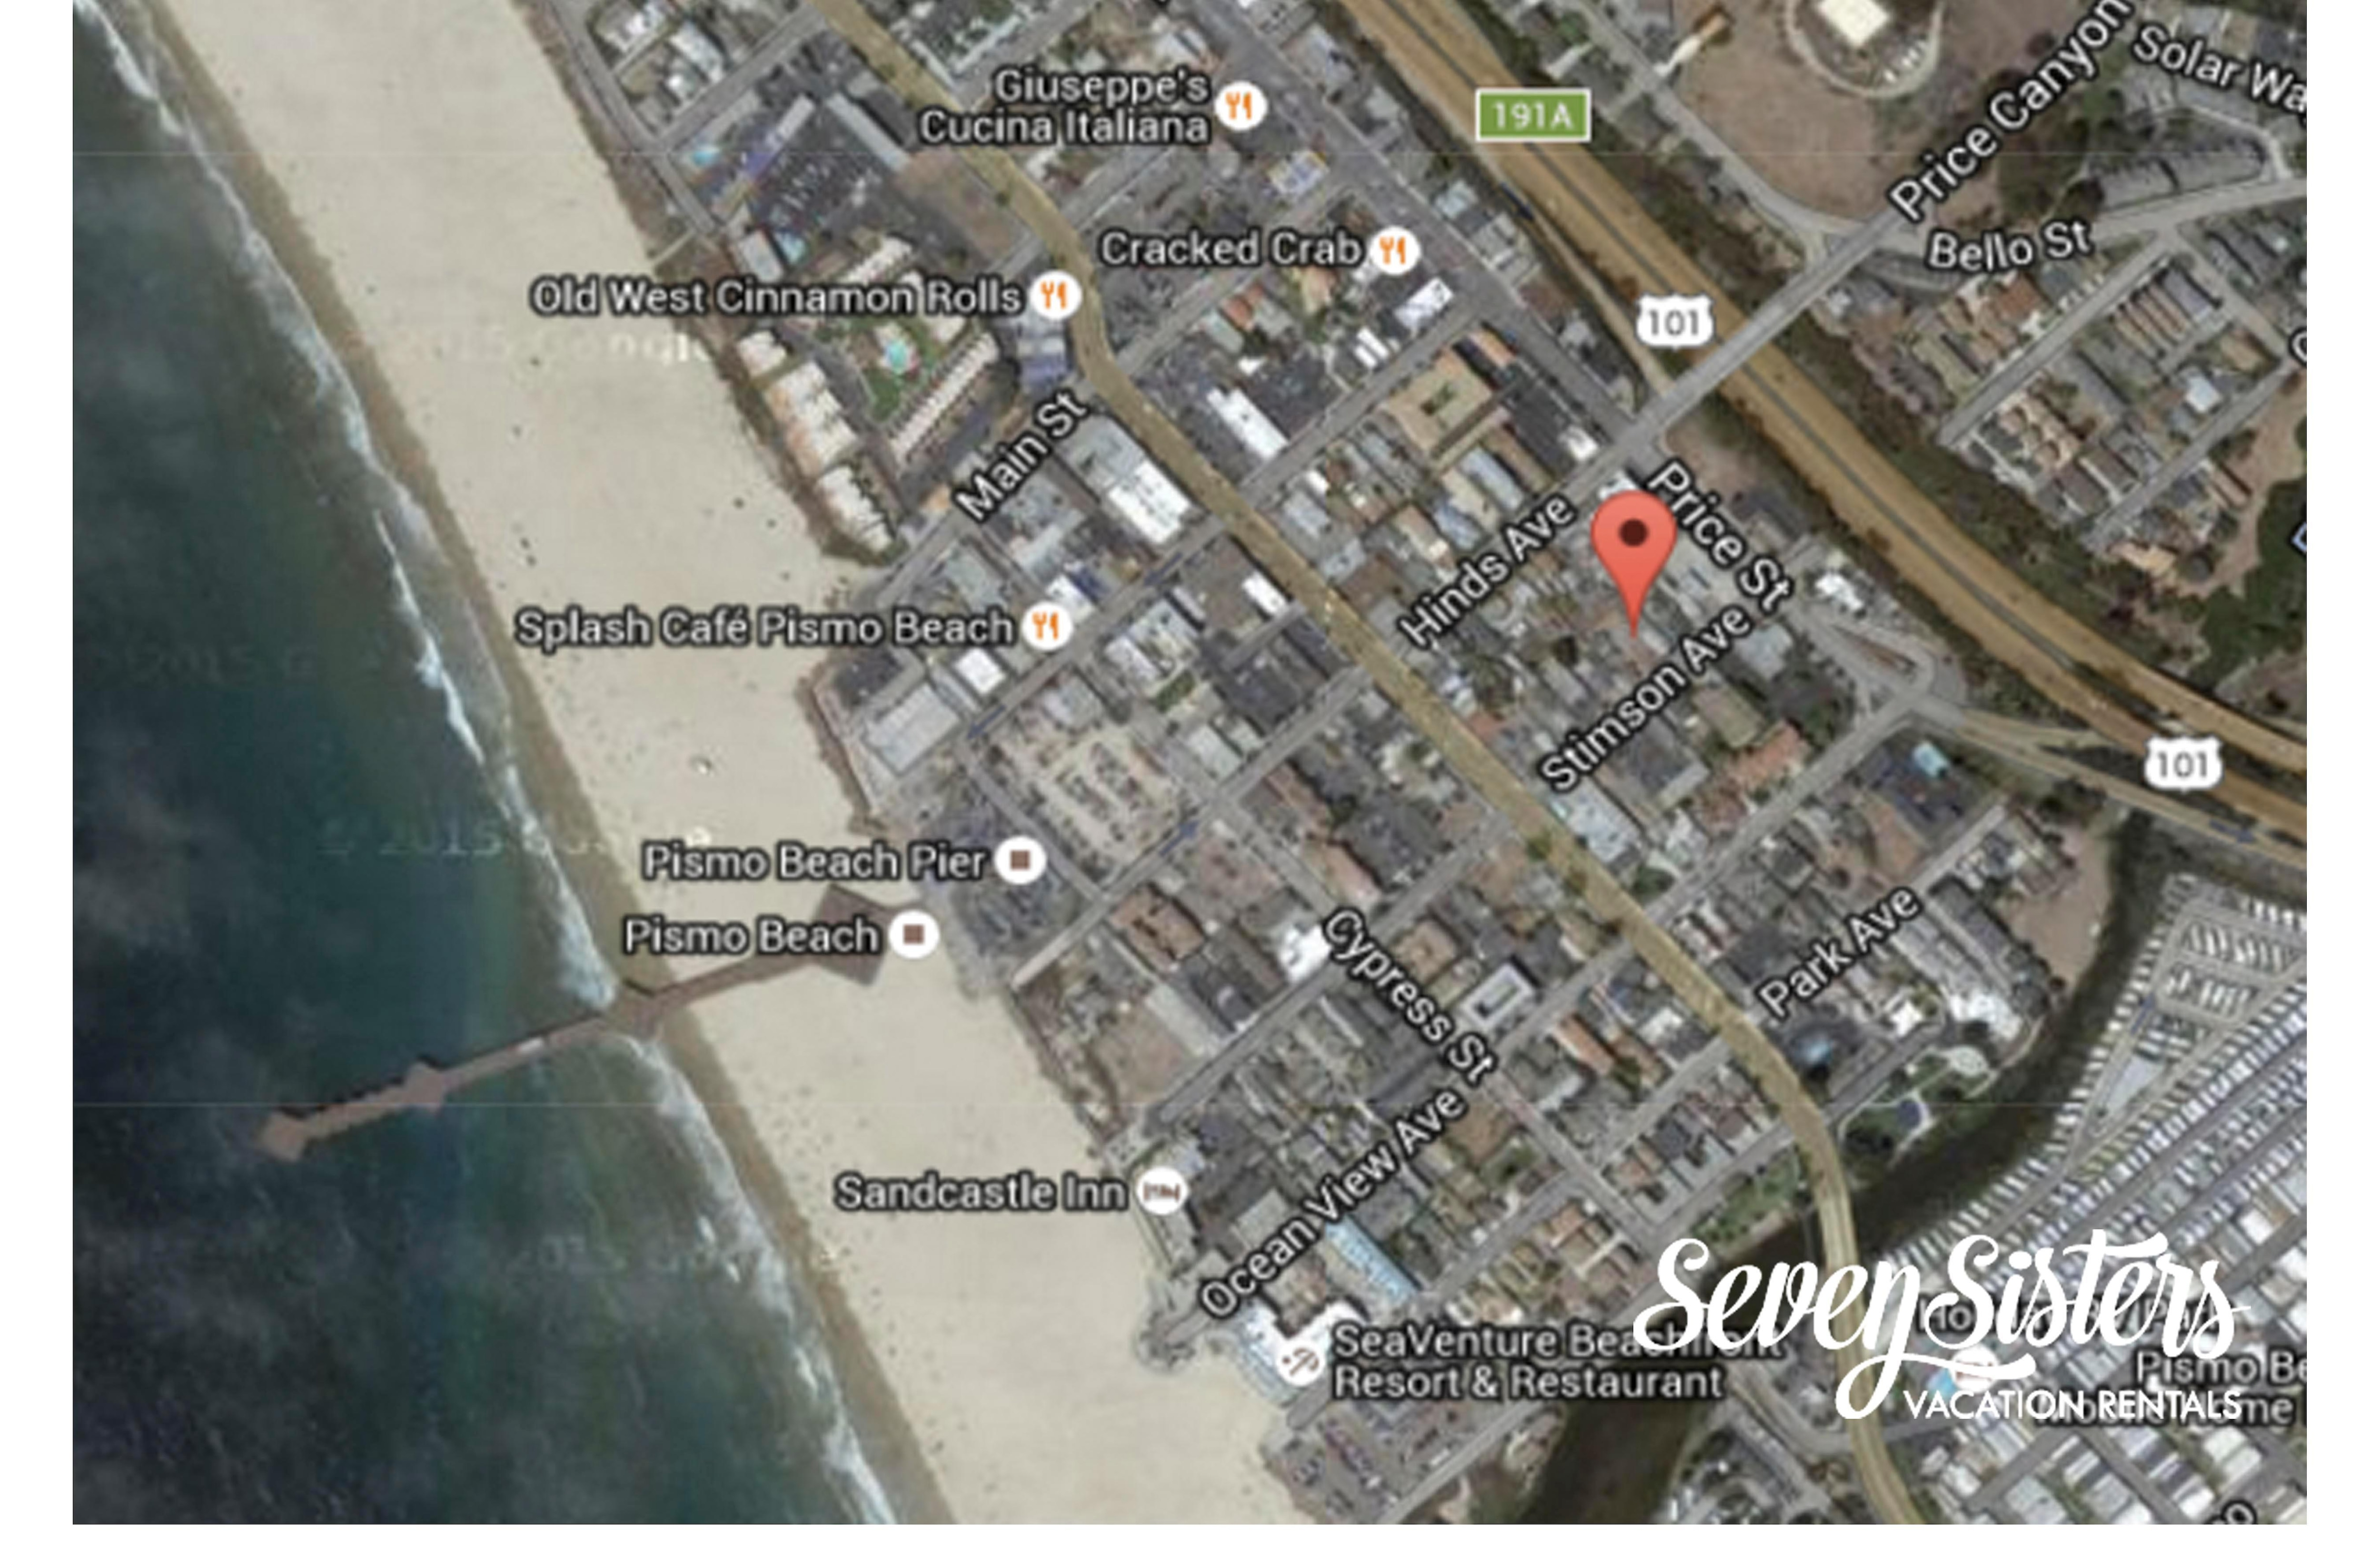 Located just two blocks from Pismo Pier.  Easy walk carrying your surf board.